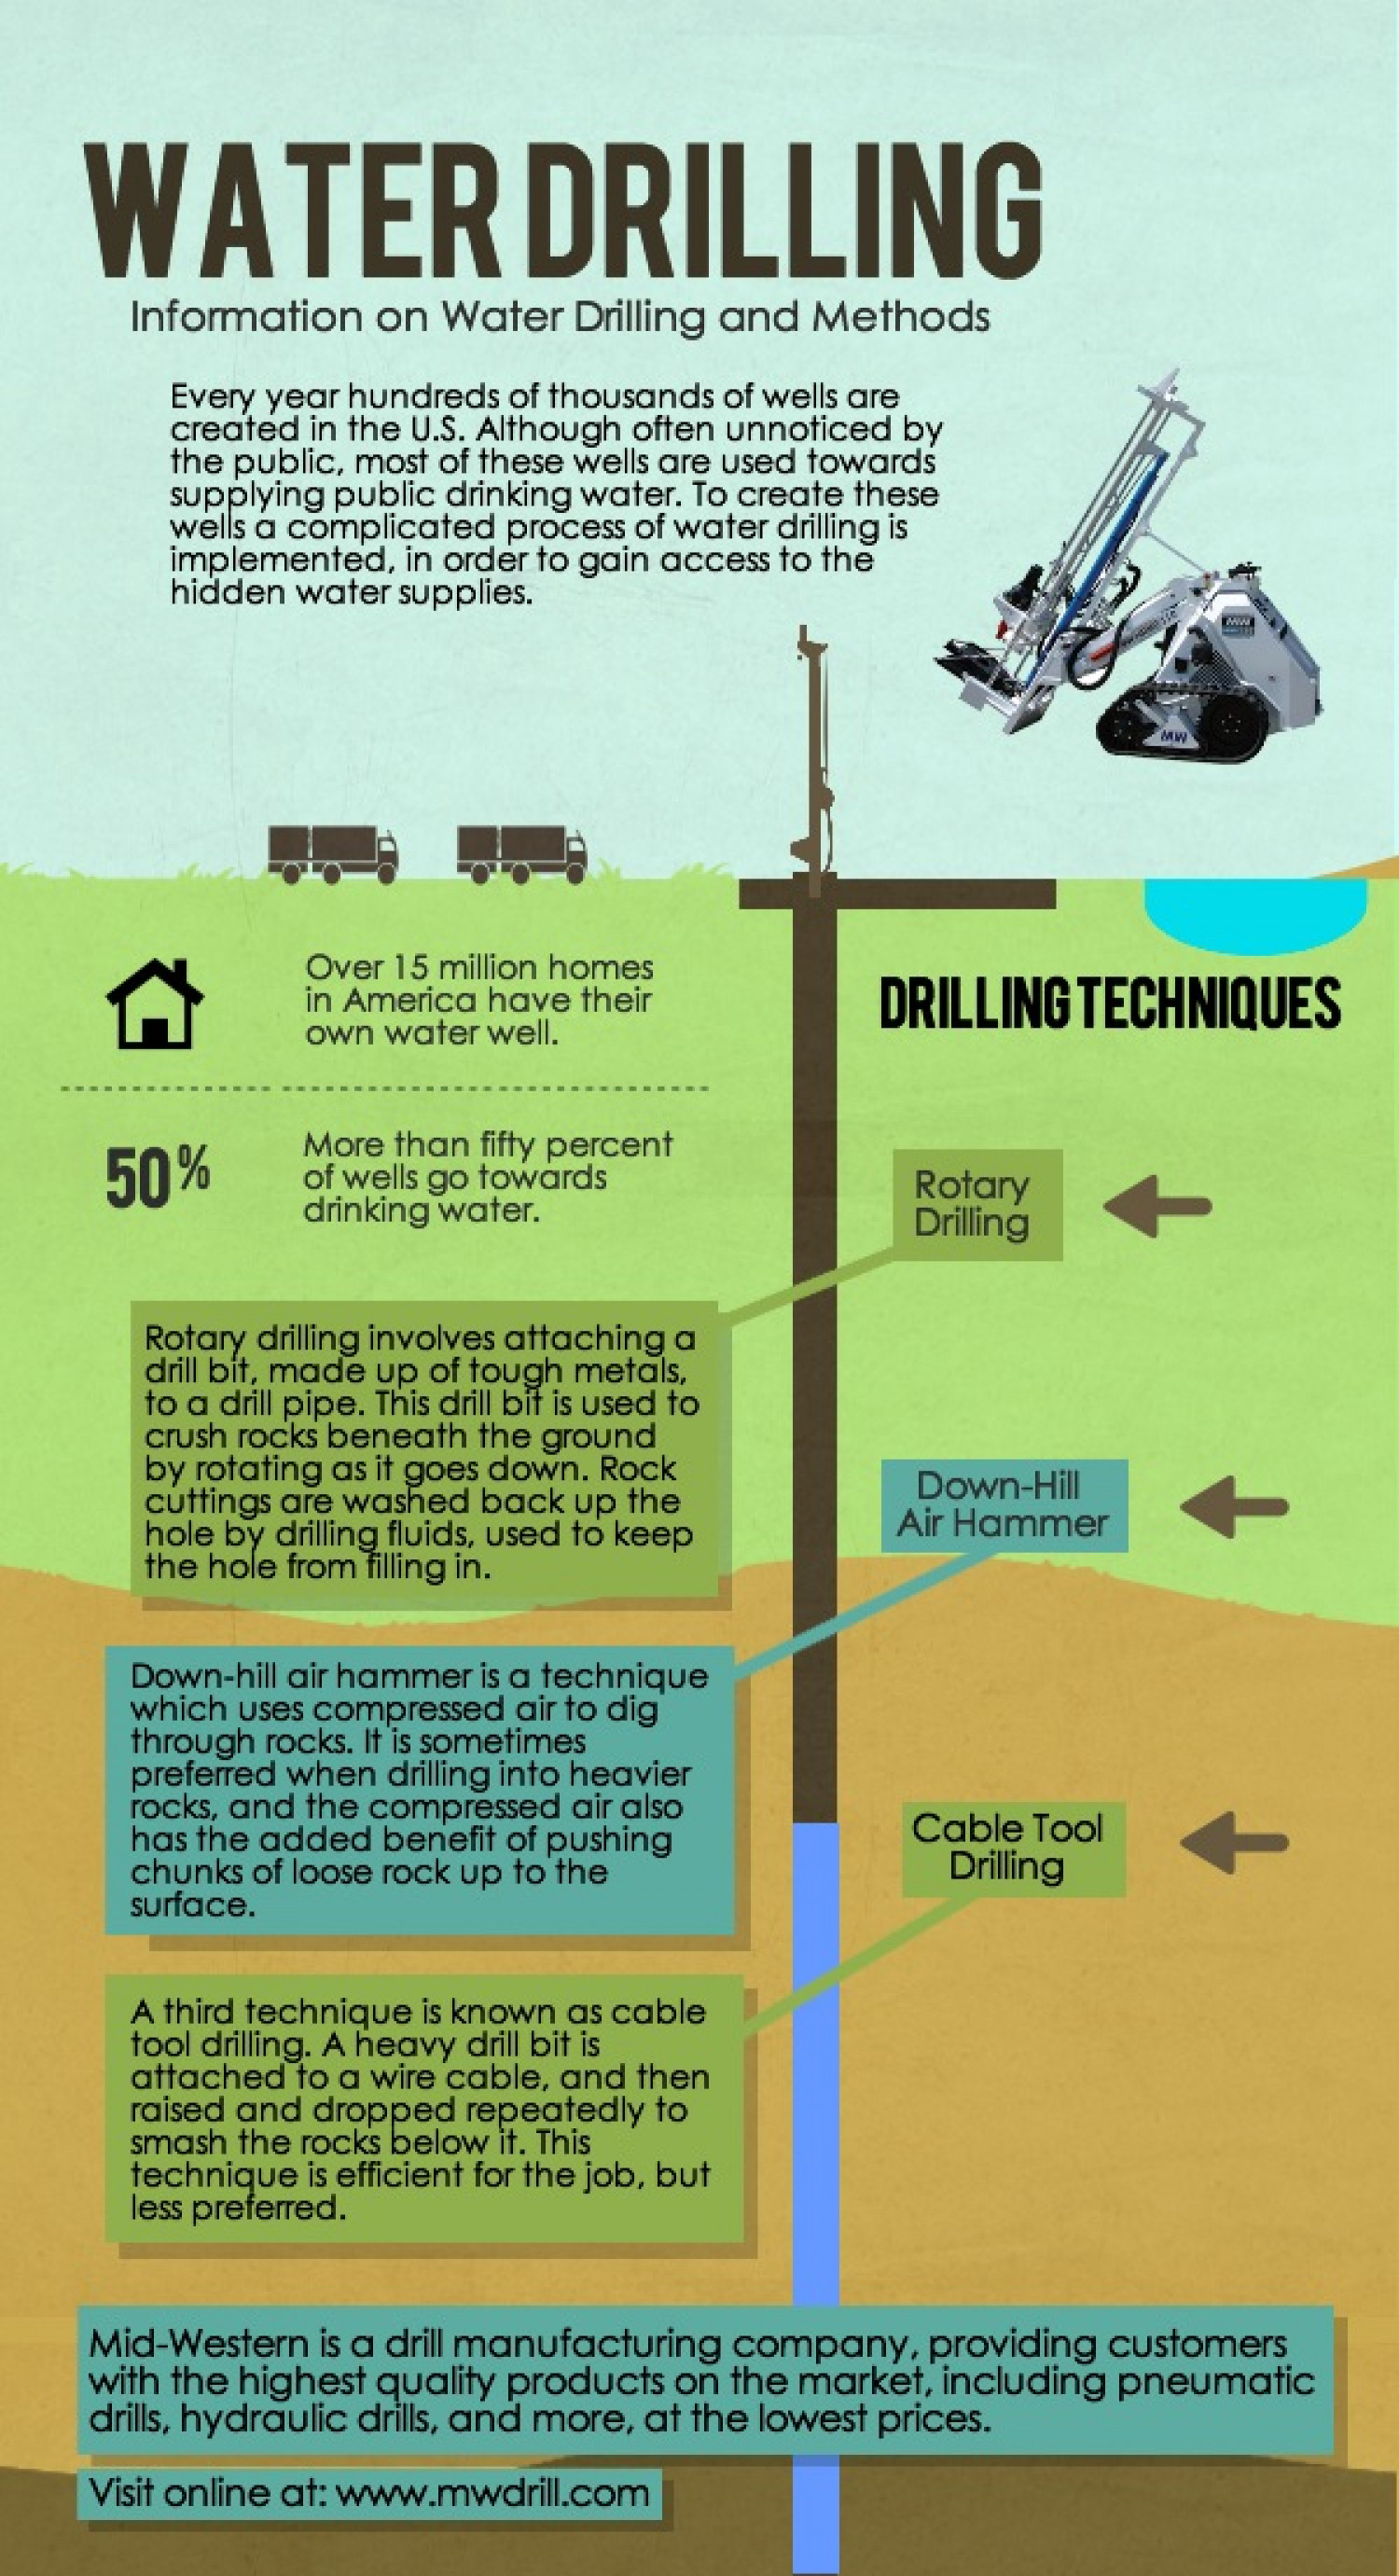 Water Drilling: information on water drilling and methods Infographic